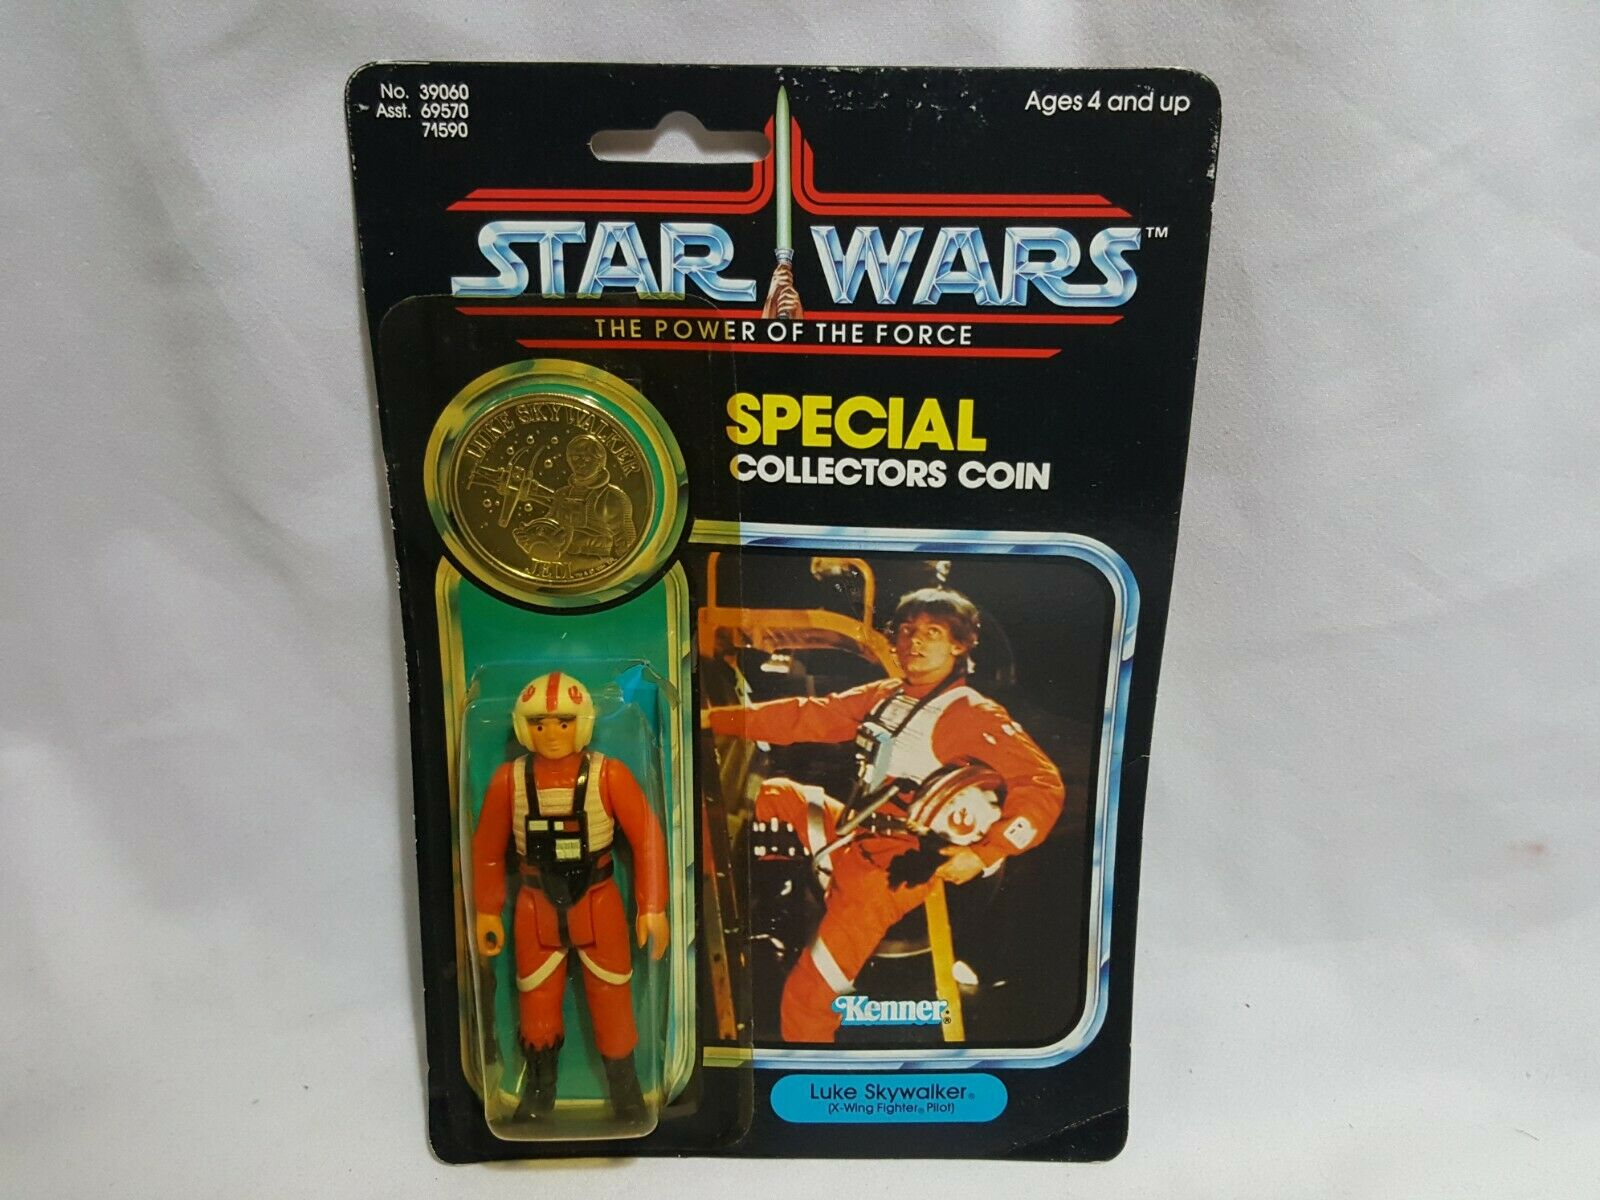 Luke Skywalker X-Wing Fighter Pilot avec coin 1984 Star Wars Power of the force